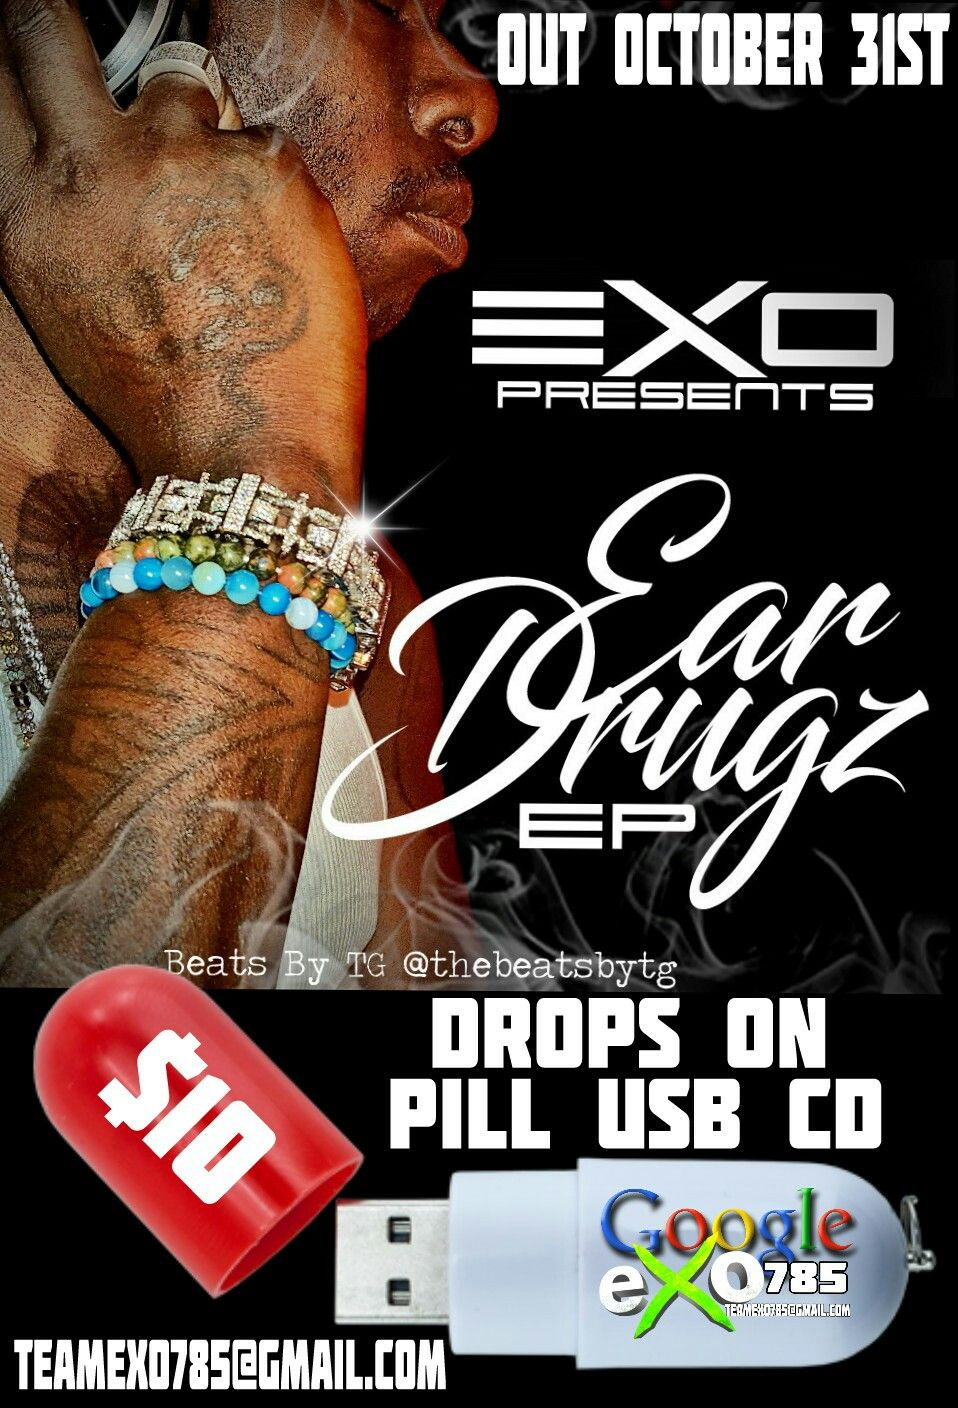 """OUT OCTOBER 31ST """"EAR DRUGZ"""" THE USB EP BY EXO (EXO785) ALL ORIGINAL BEATS BY TG. DROPS ON PILL USE FLASH DRIVE FOR $10 INCLUDING FULL CD """"EAR DRUGZ"""", INTERVIEWS, MUSIC VIDEO, SIGNED ARTWORK, A COOL USB AND MORE."""